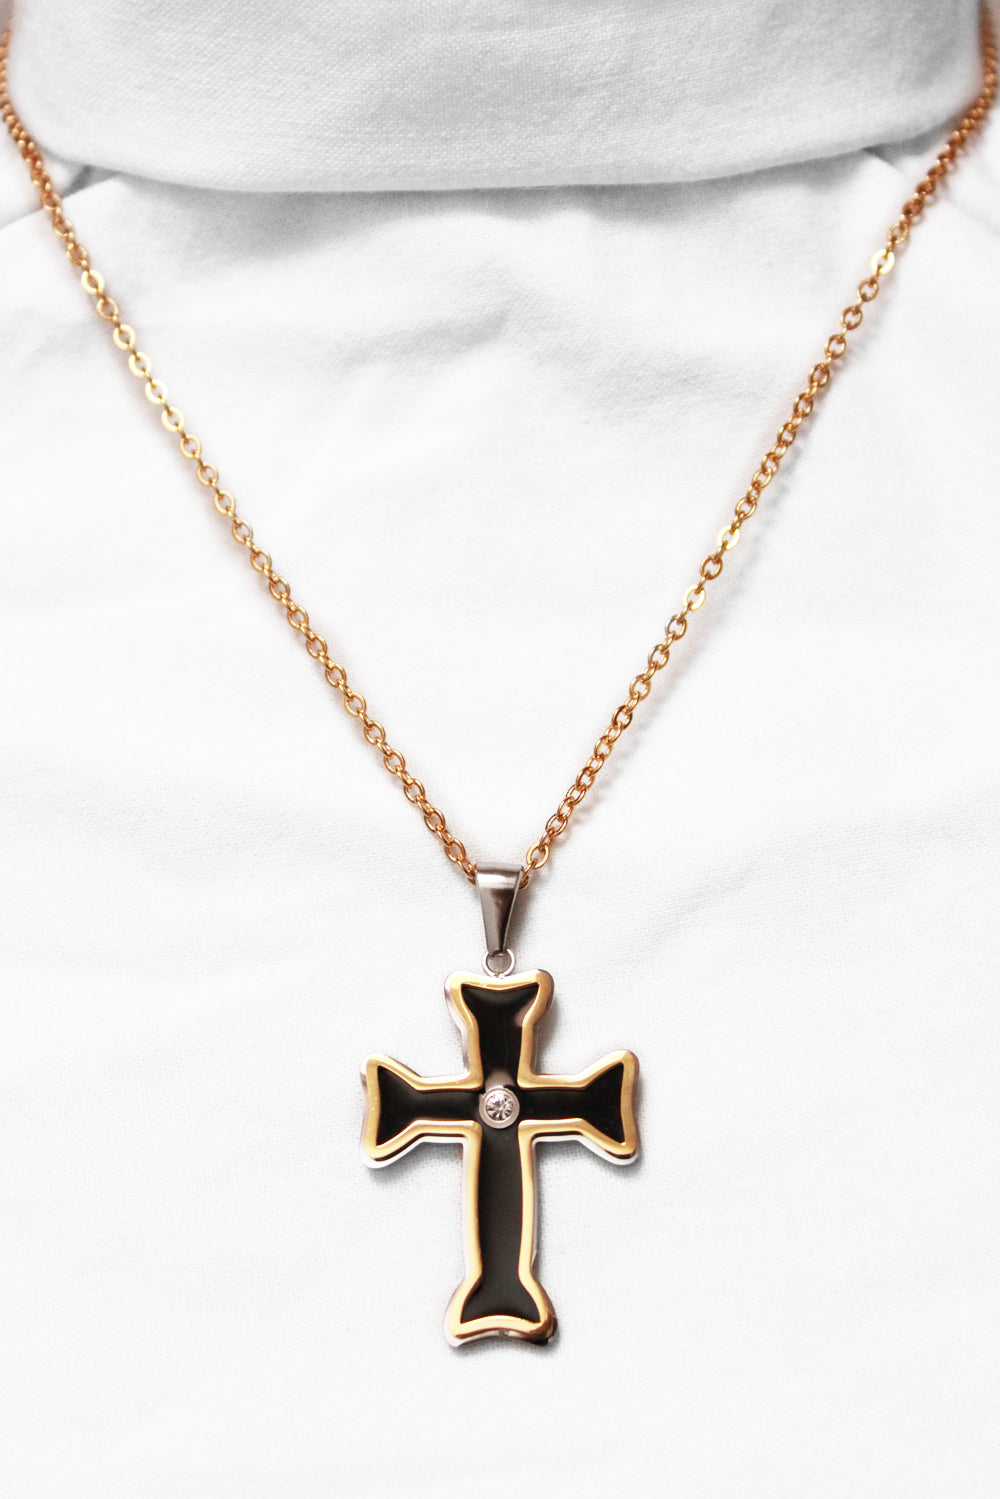 Gold & black steel cross & chain